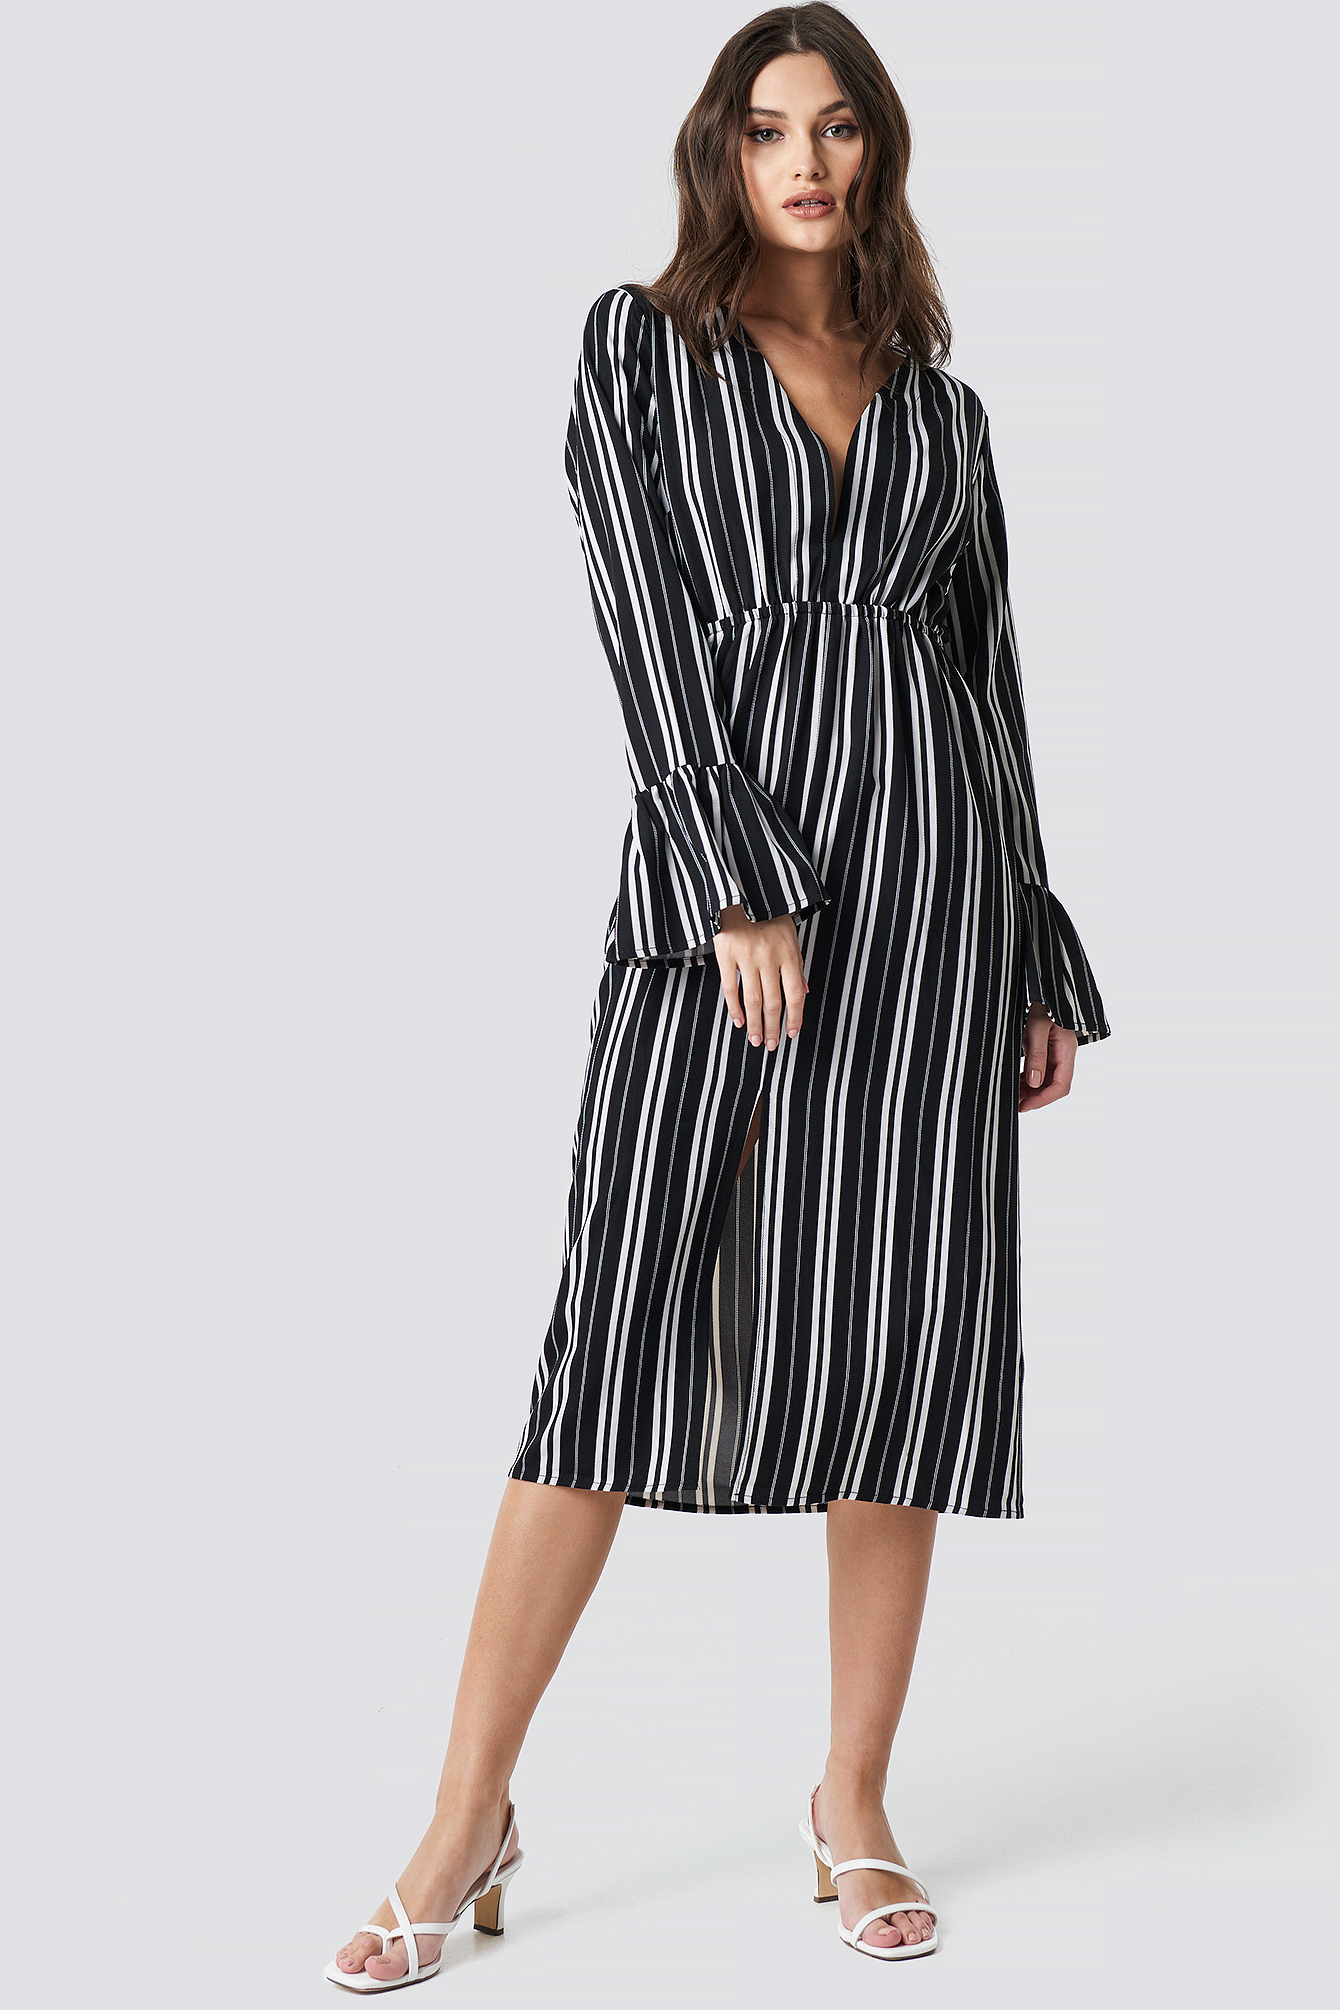 Black/White Stripe Elastic Waist Flute Sleeve Dress